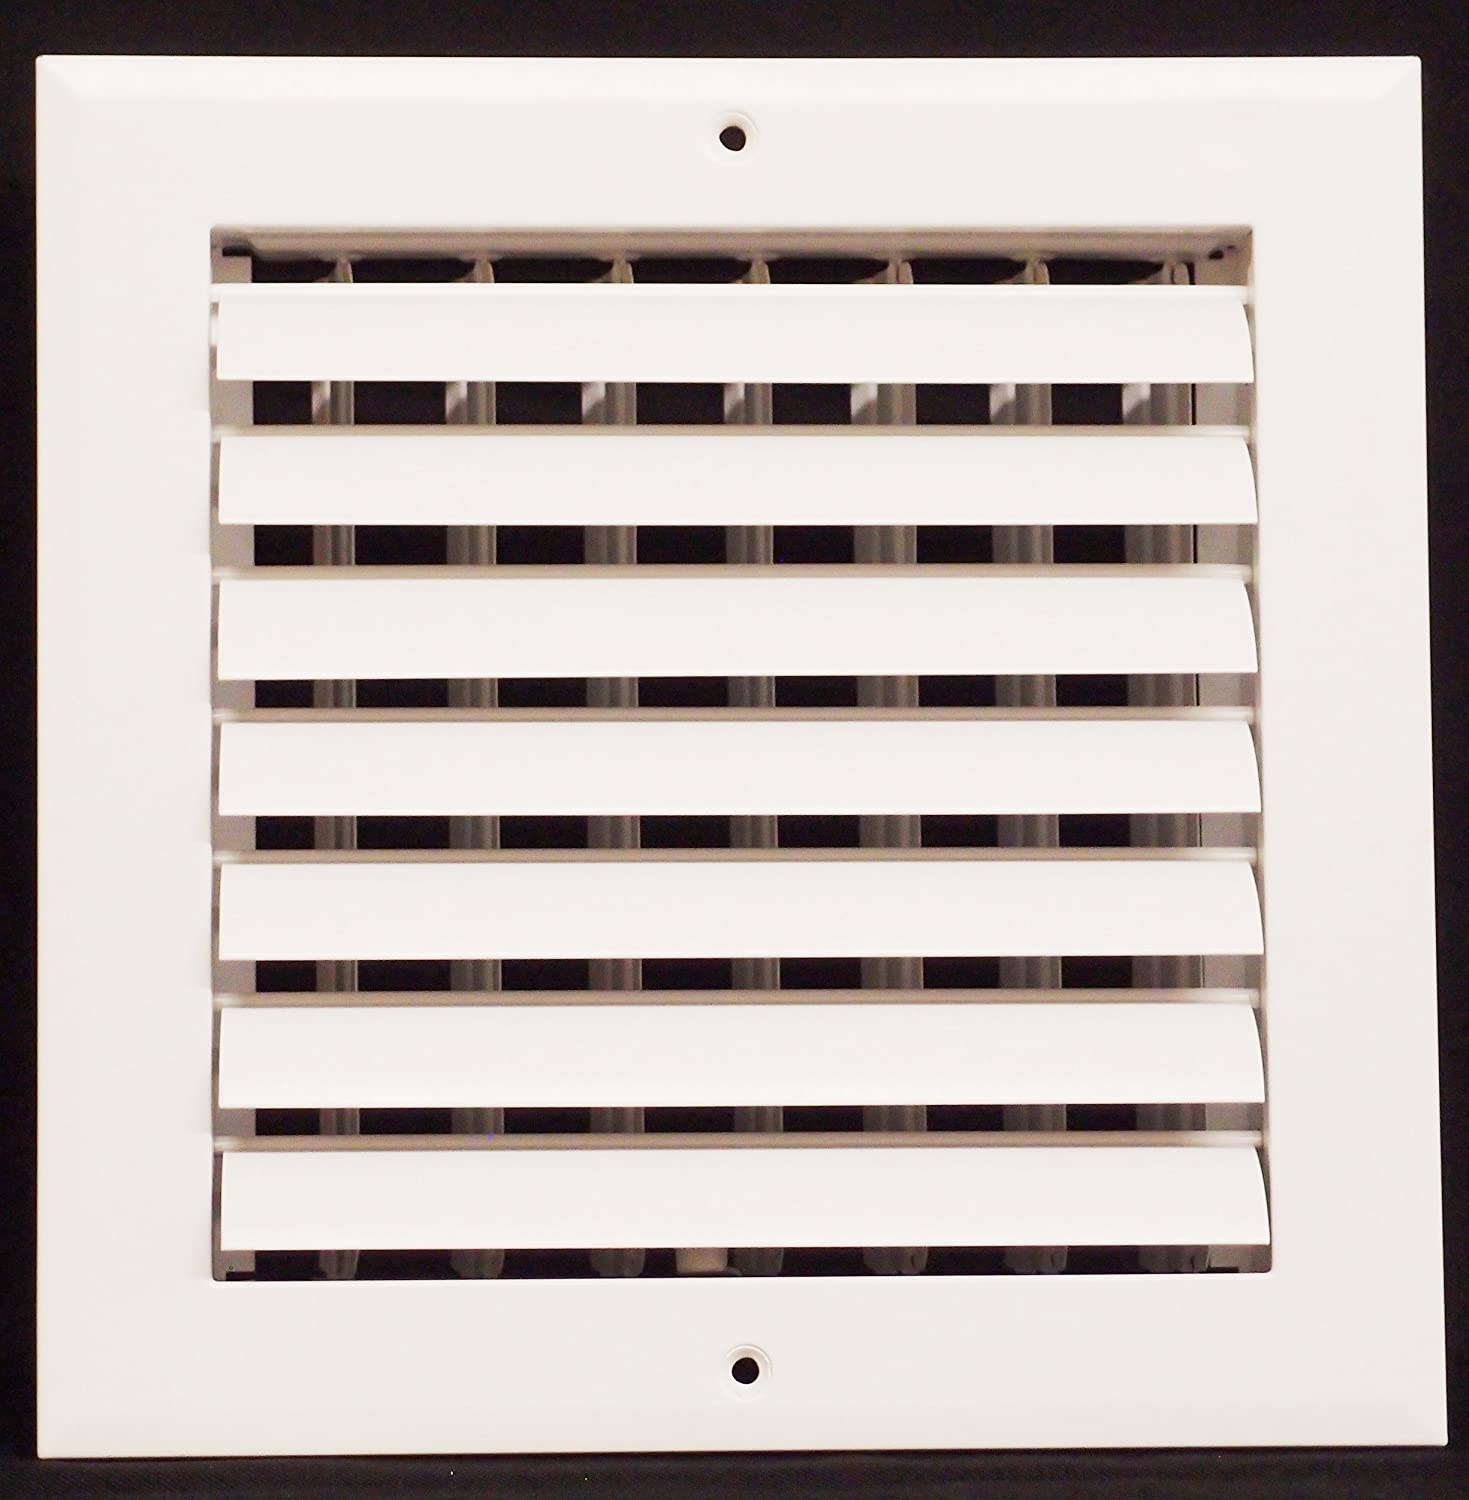 "8"" x 8"" - 1-Way Air Vent - Adjustable Aluminum Curved Blades - Maximum Air Flow - HVAC Grille"